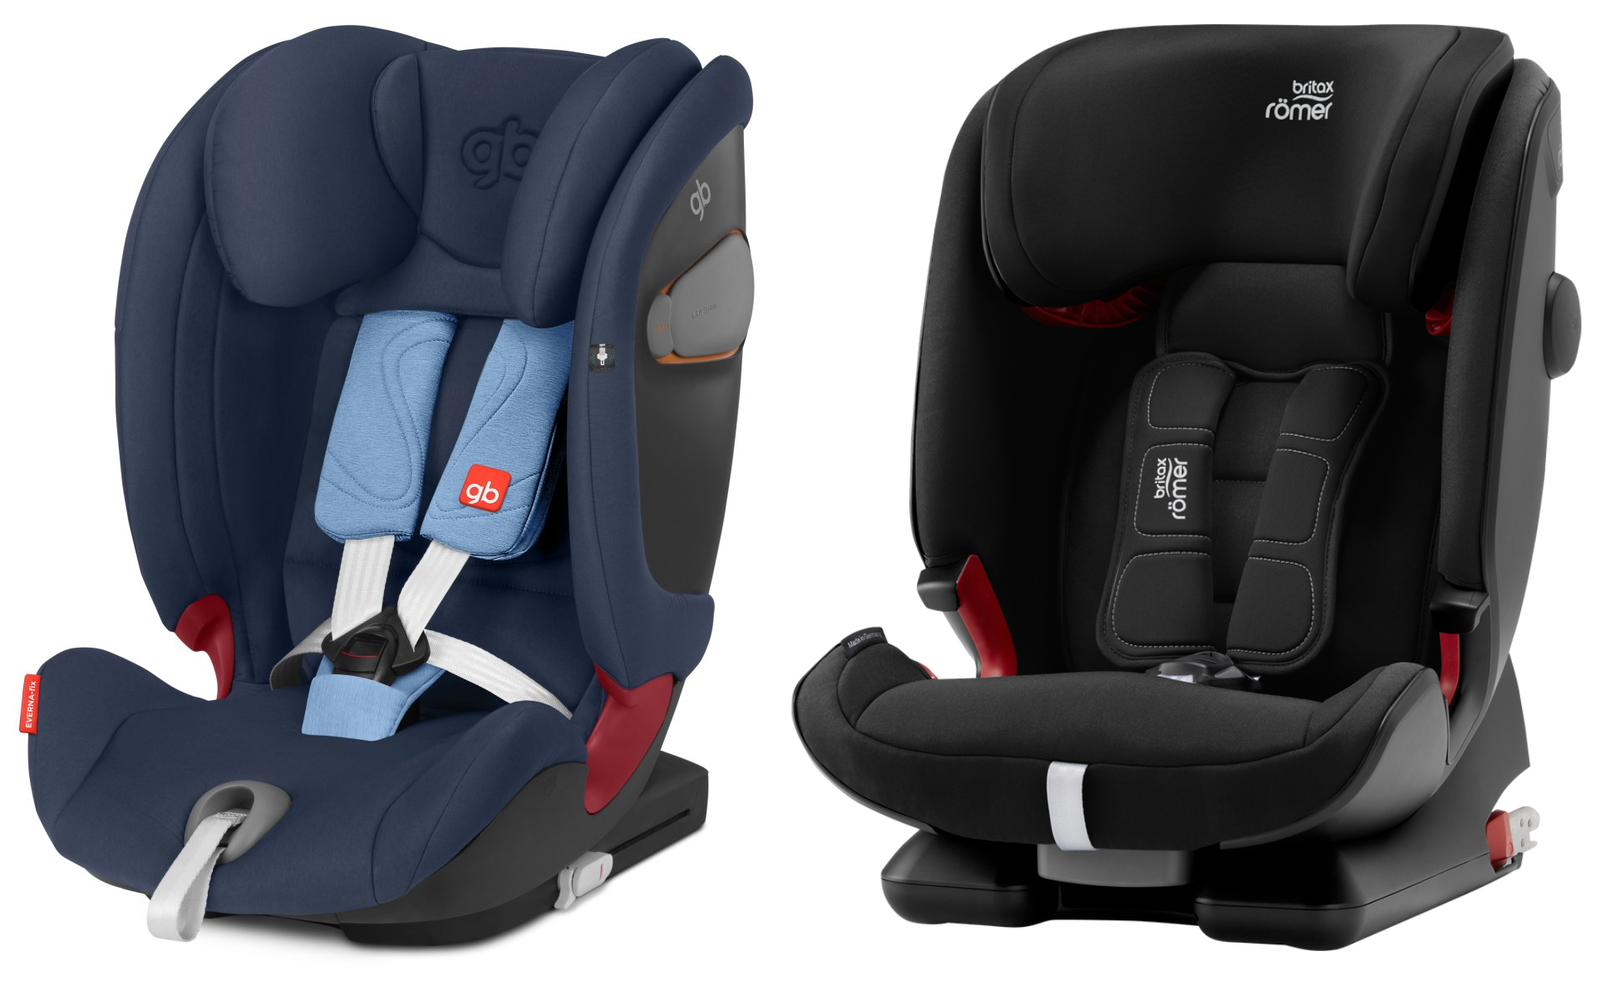 Comparatif GB Everna-fix et Britax Advansafix IV